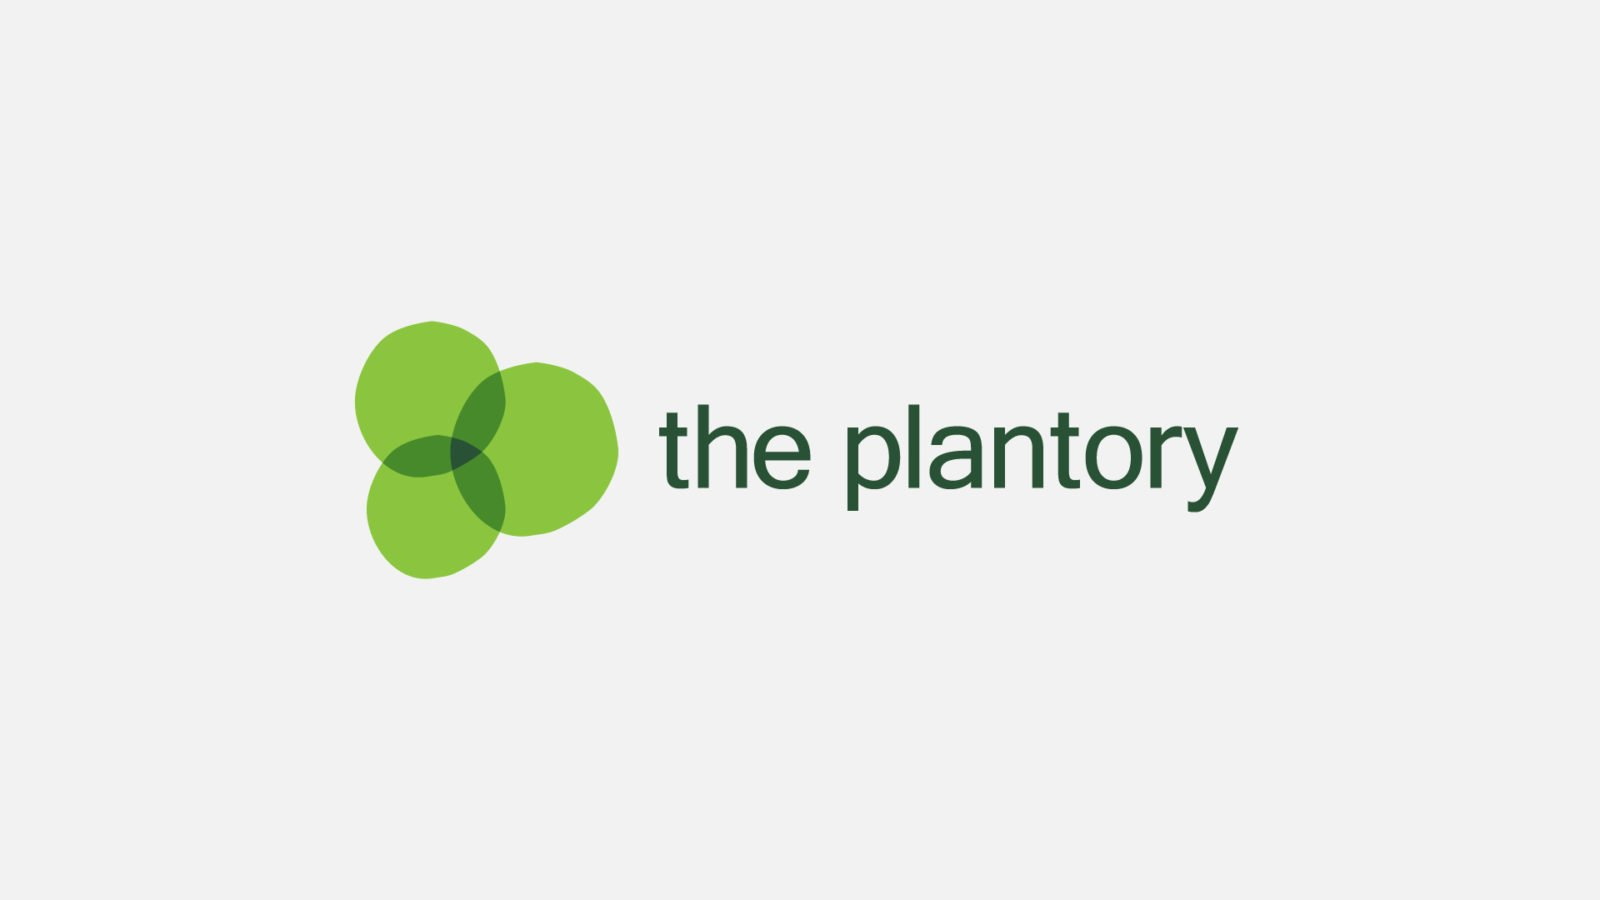 Logo and Naming of the Nonprofit The Plantory by Bullhorn